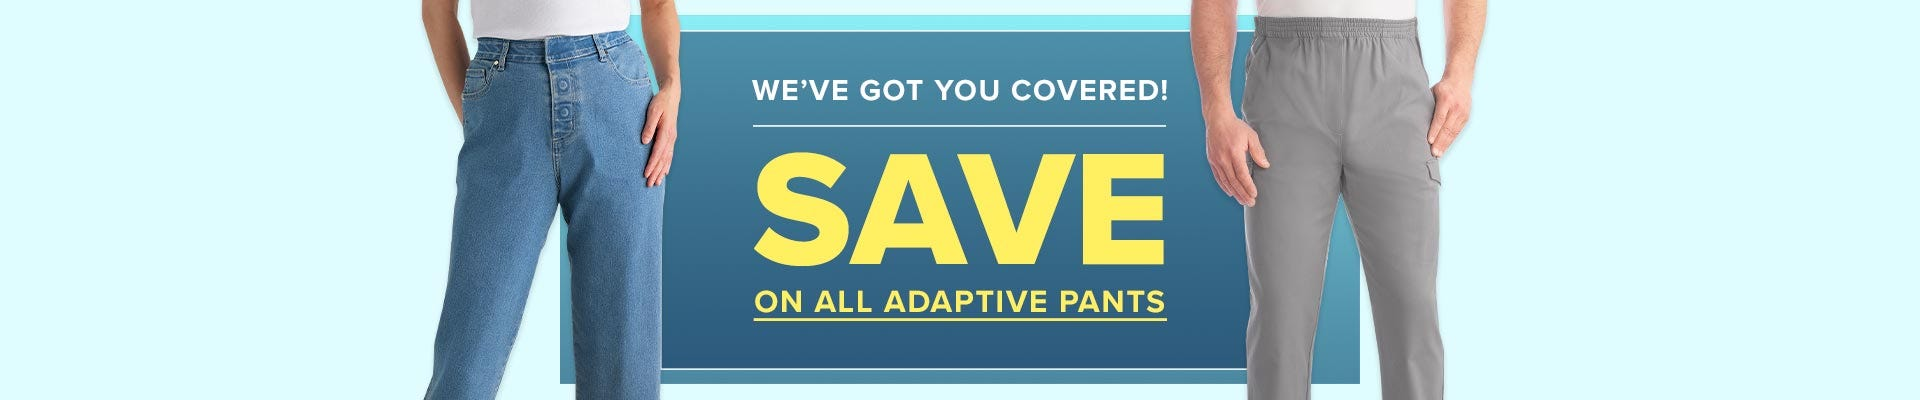 We've got you covered! Save on all adaptive pants